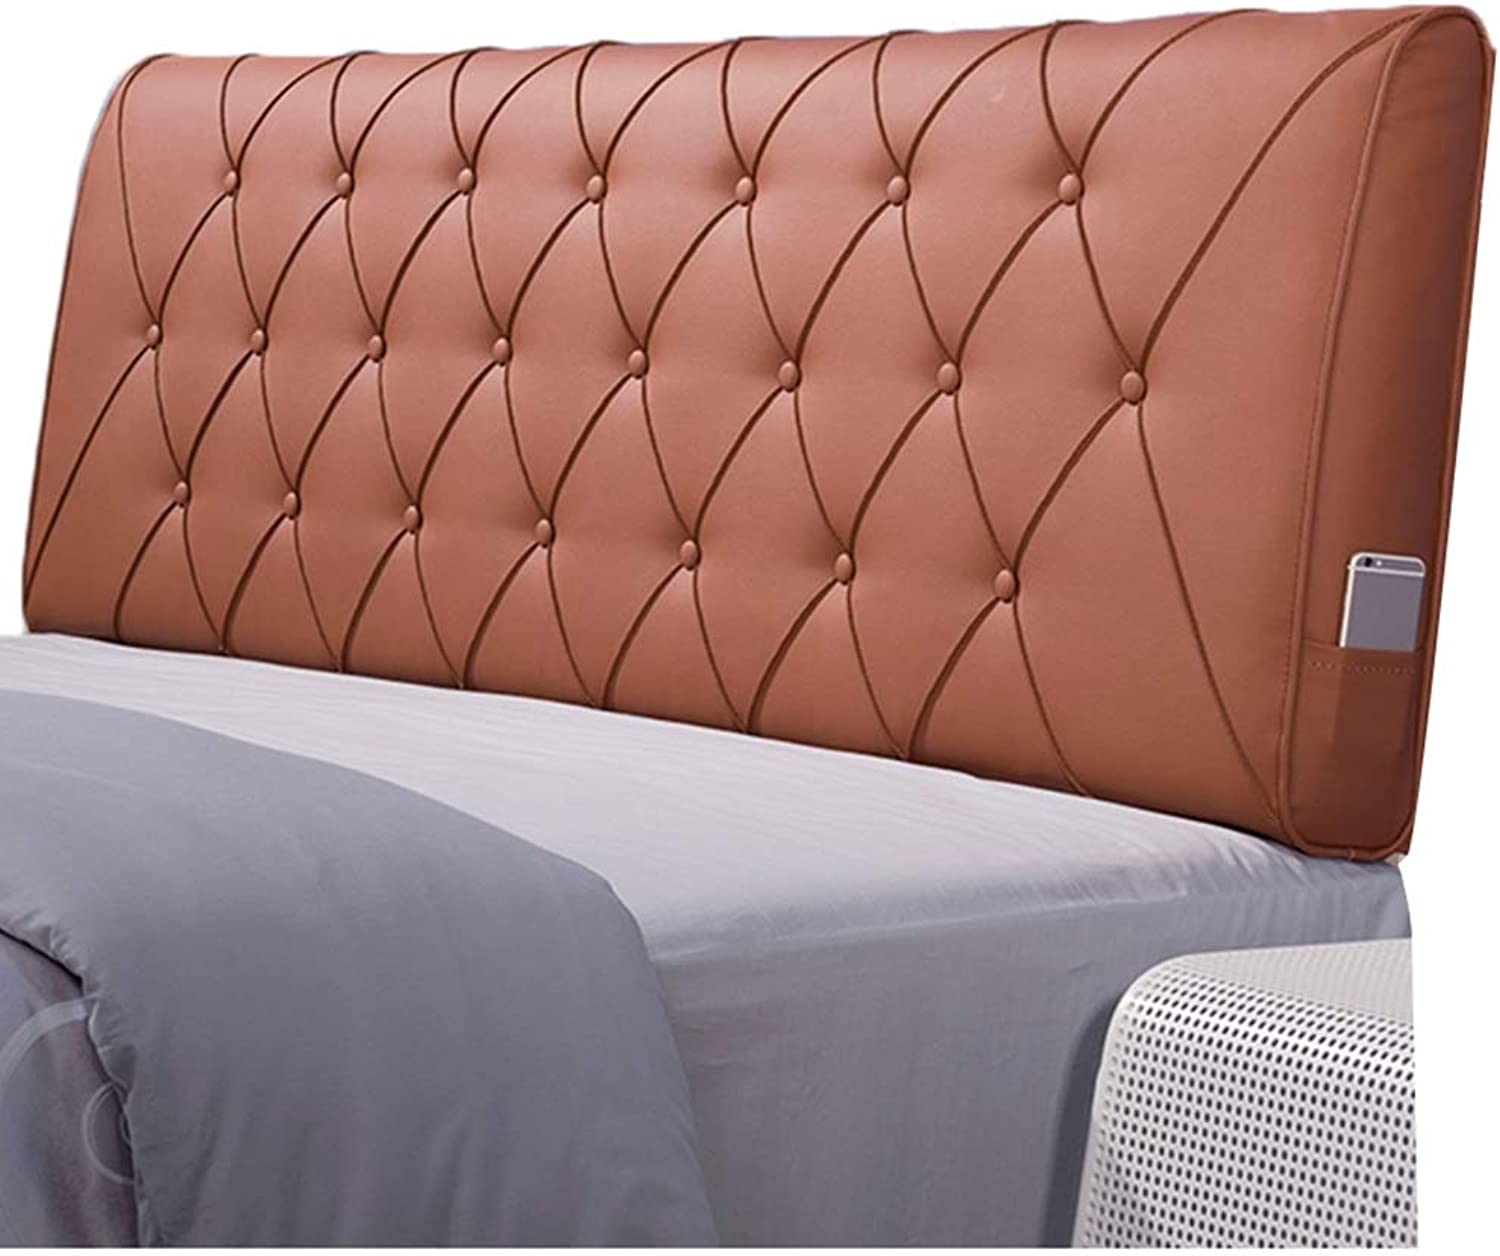 WENZHE Upholstered Fabric Headboard Bedside Cushion Pads Cover Bed Wedges Backrest Waist Pad PU Soft Case Soft Comfortable Home Bedroom Backrest, 5 colors (color   A, Size   90x60x11cm)